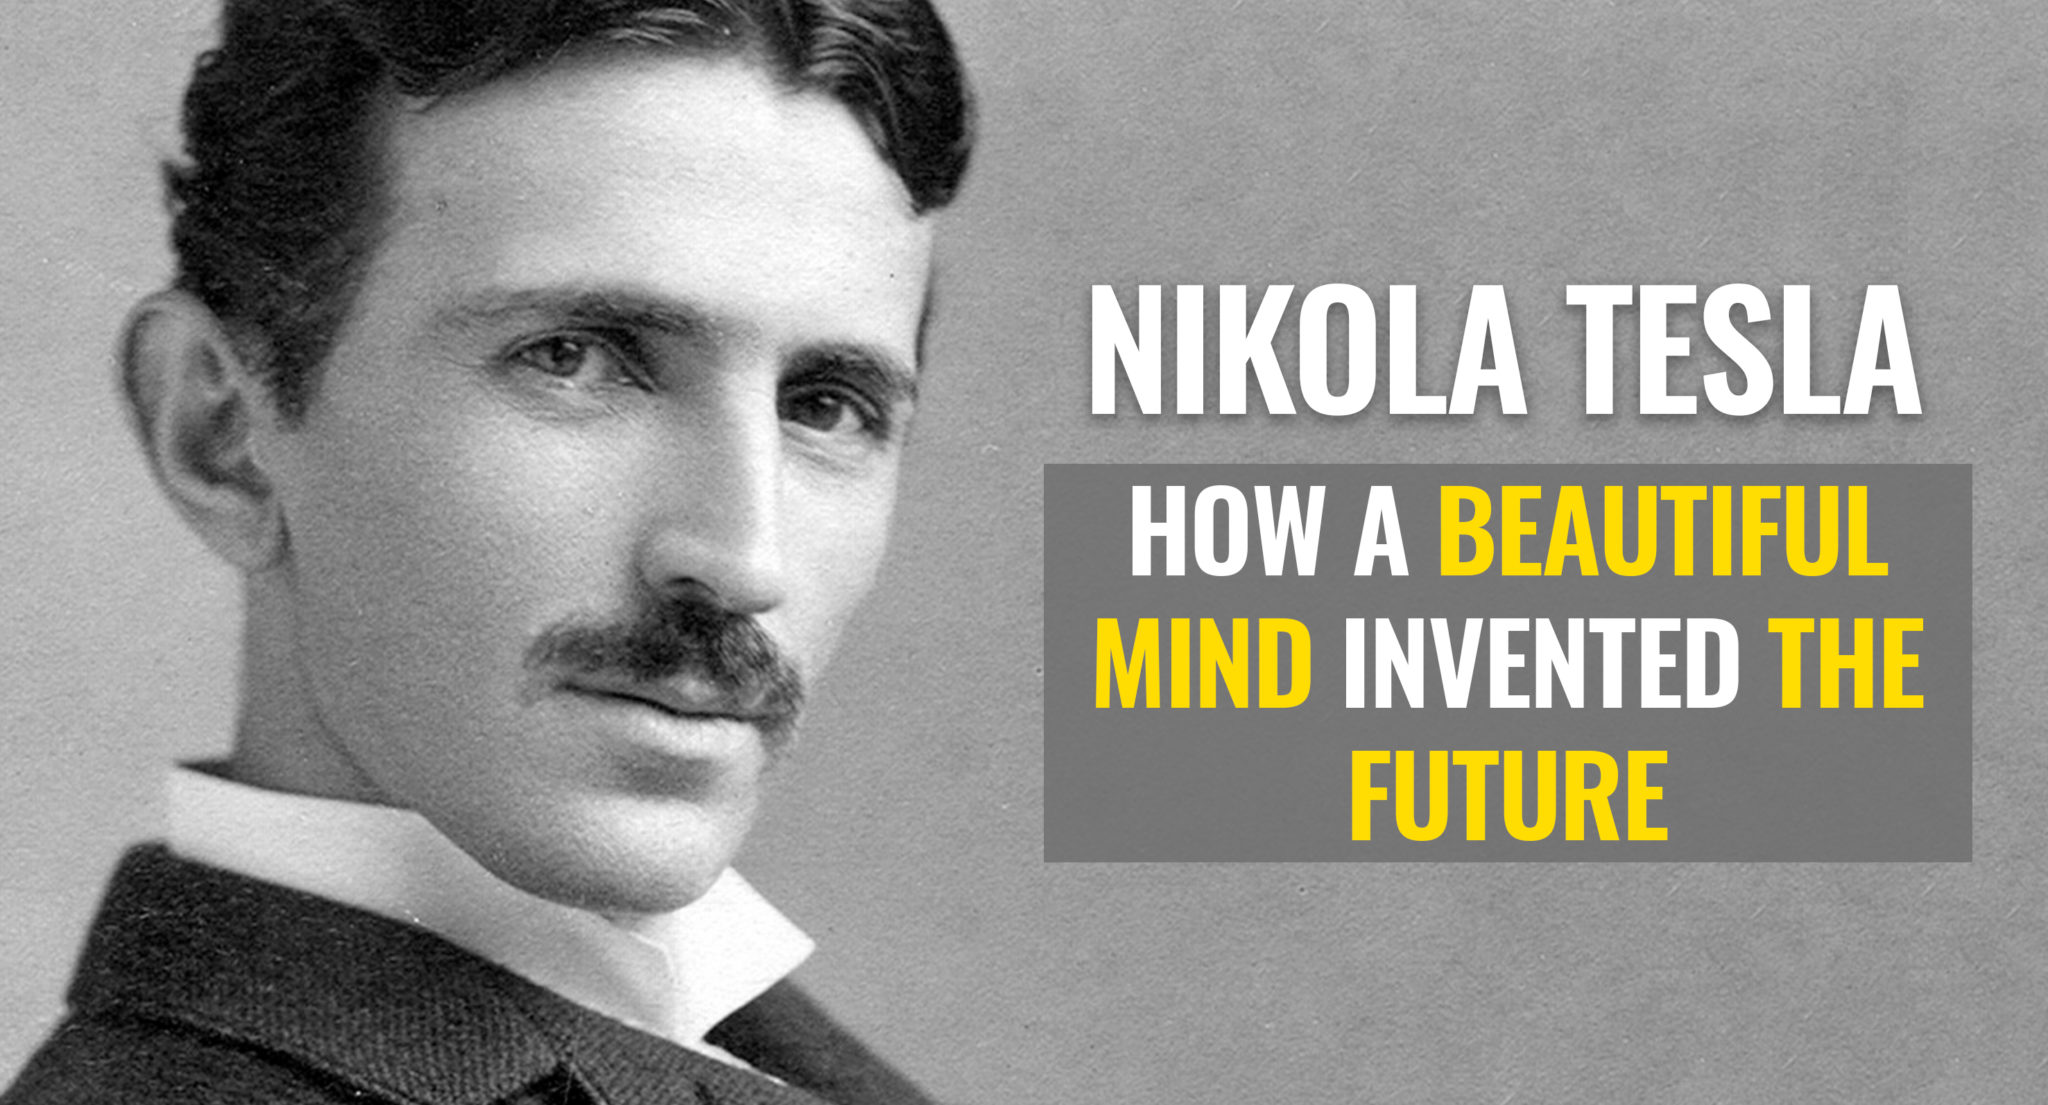 Nikola Tesla S Life Story How A Beautiful Mind Invented